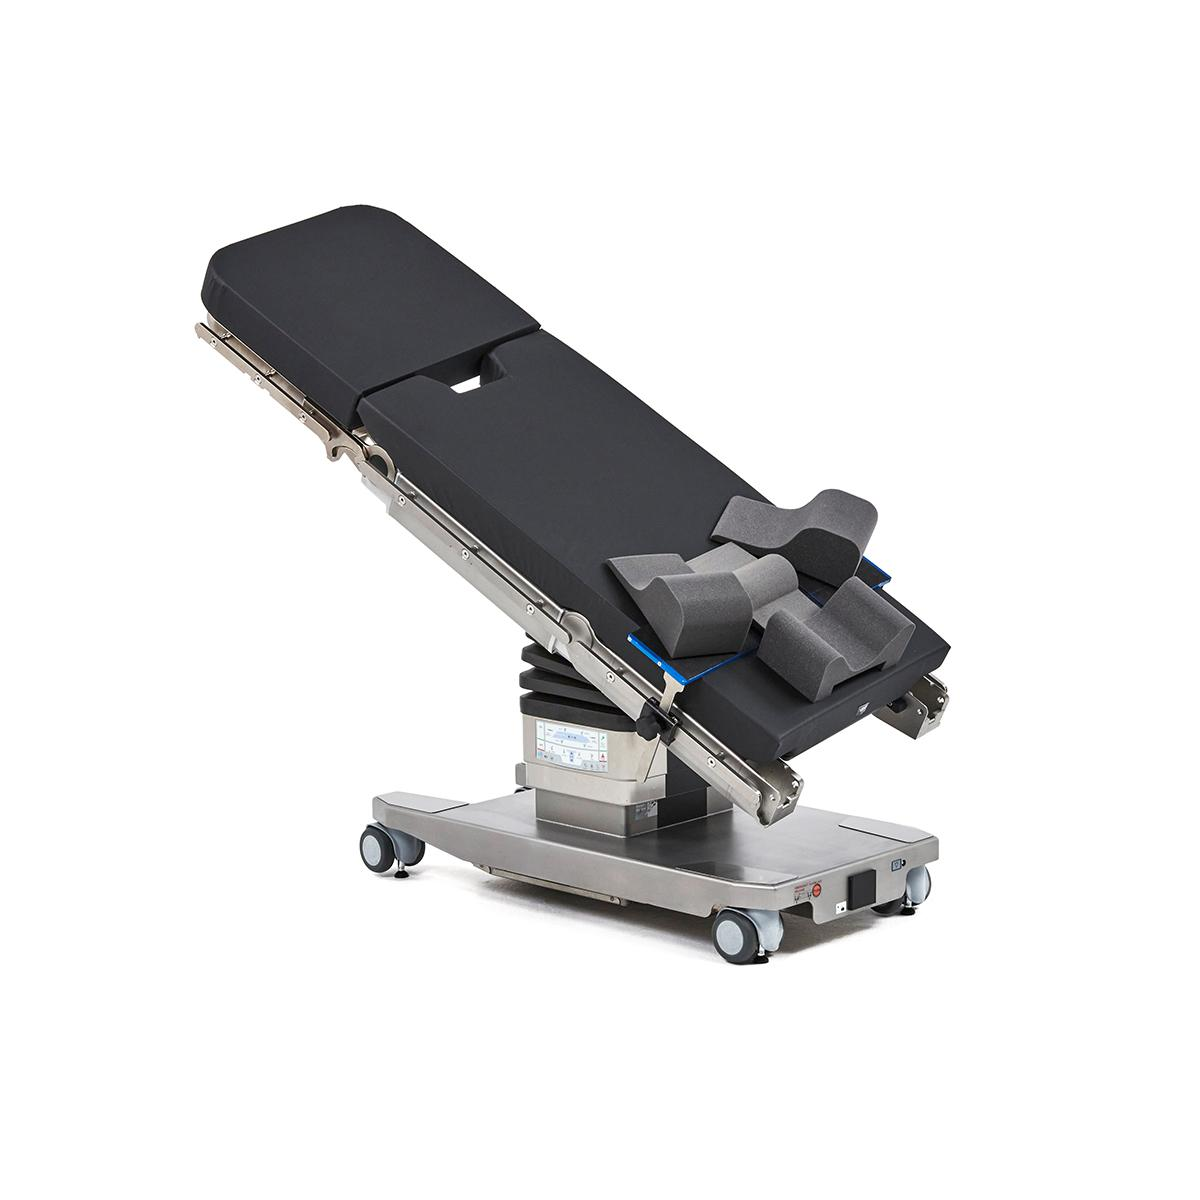 Surgical Table equipped with Hillrom Steep Trend Accessories.